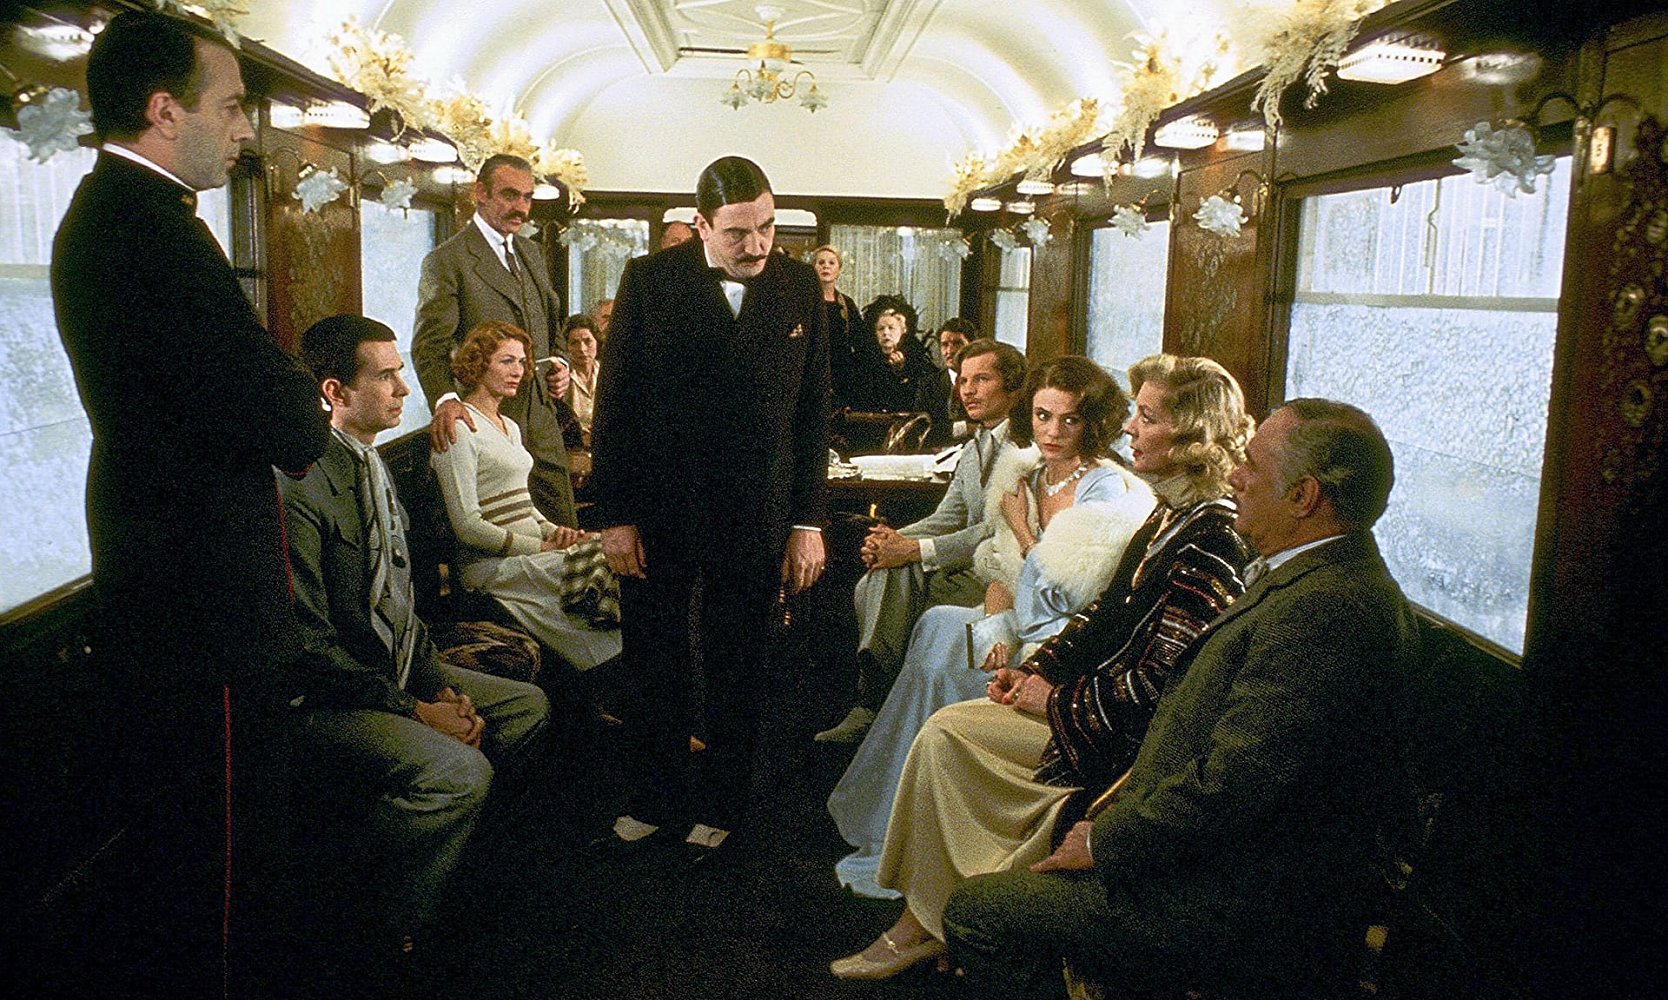 1970s murder on the orient express